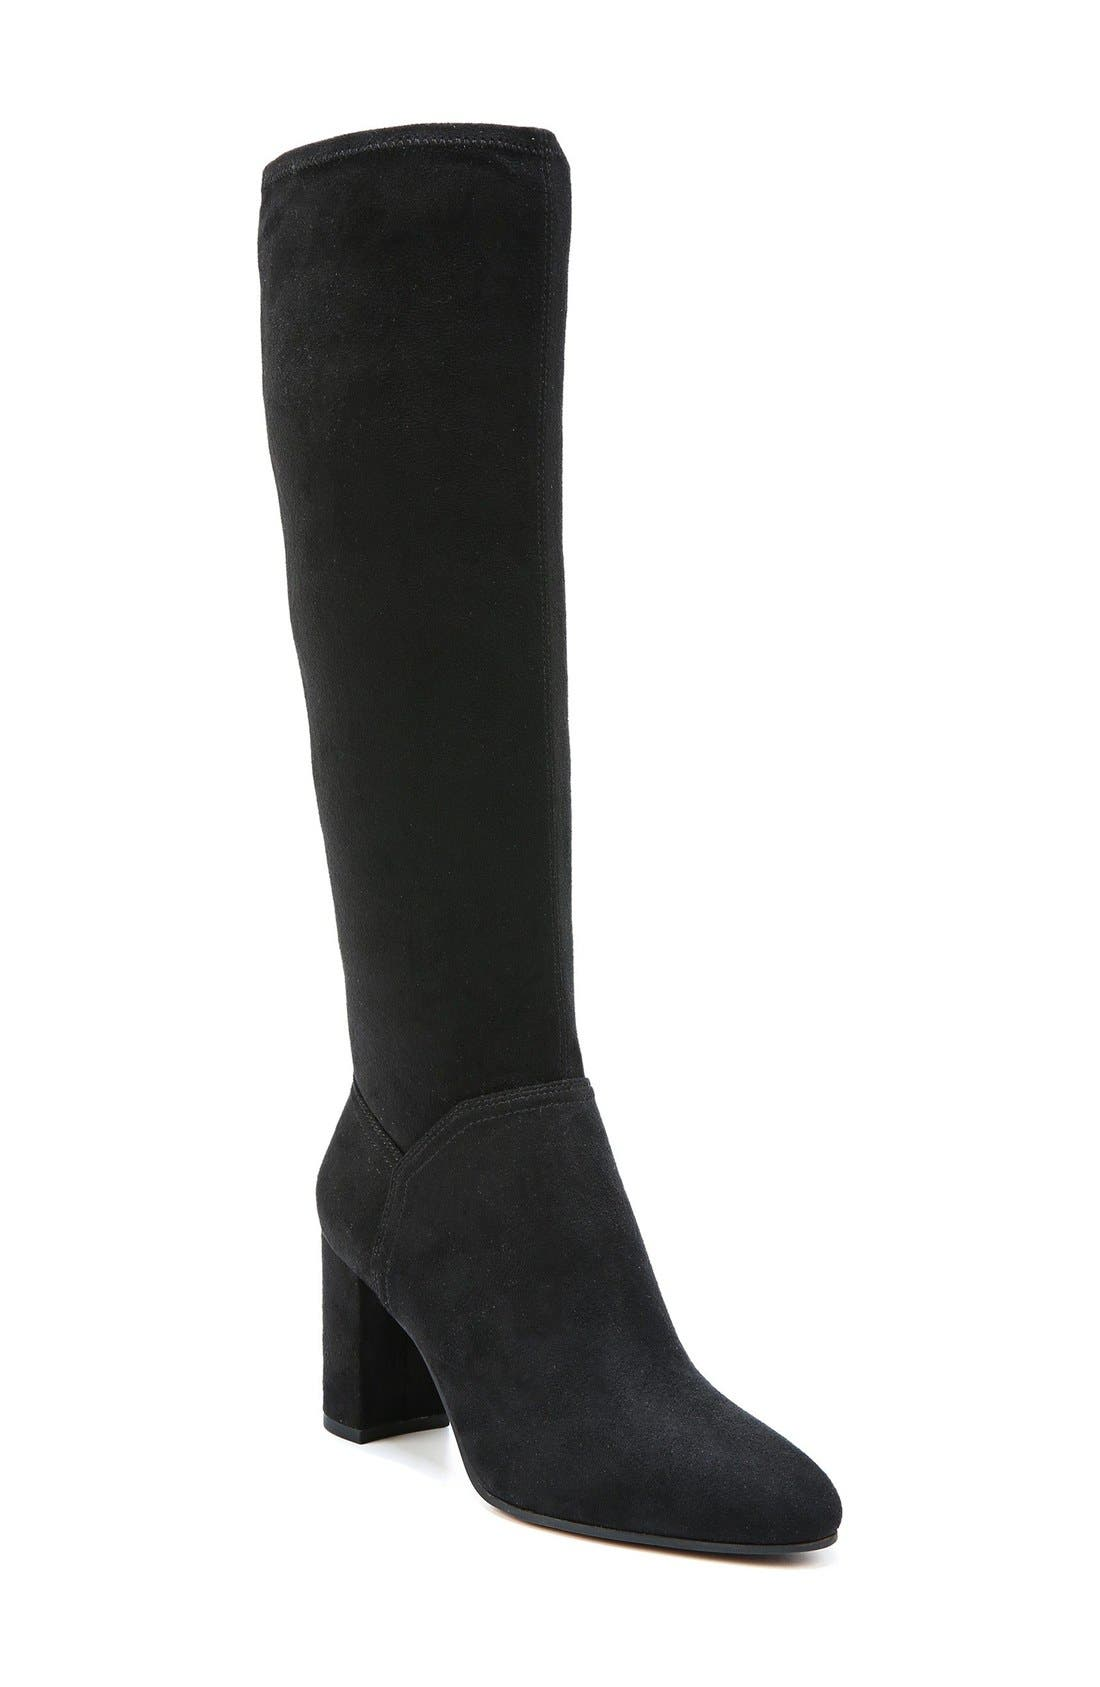 Alternate Image 1 Selected - SARTO by Franco Sarto Effie Knee High Boot (Women)